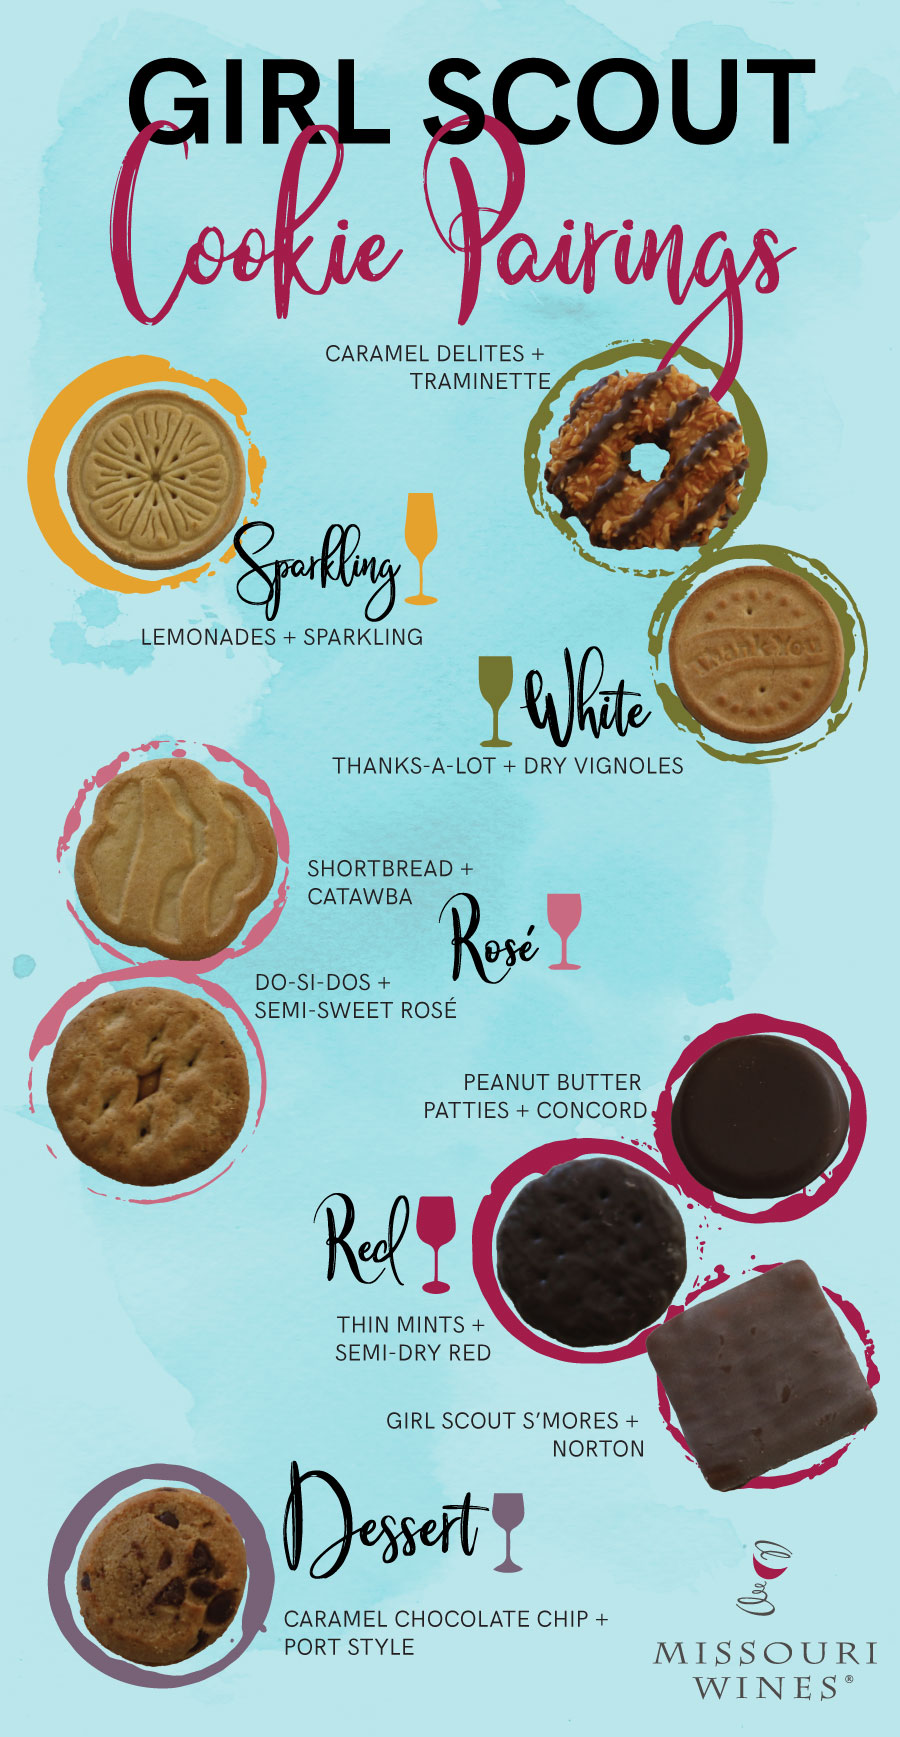 Girl Scout Cookies and Missouri Wine Pairing